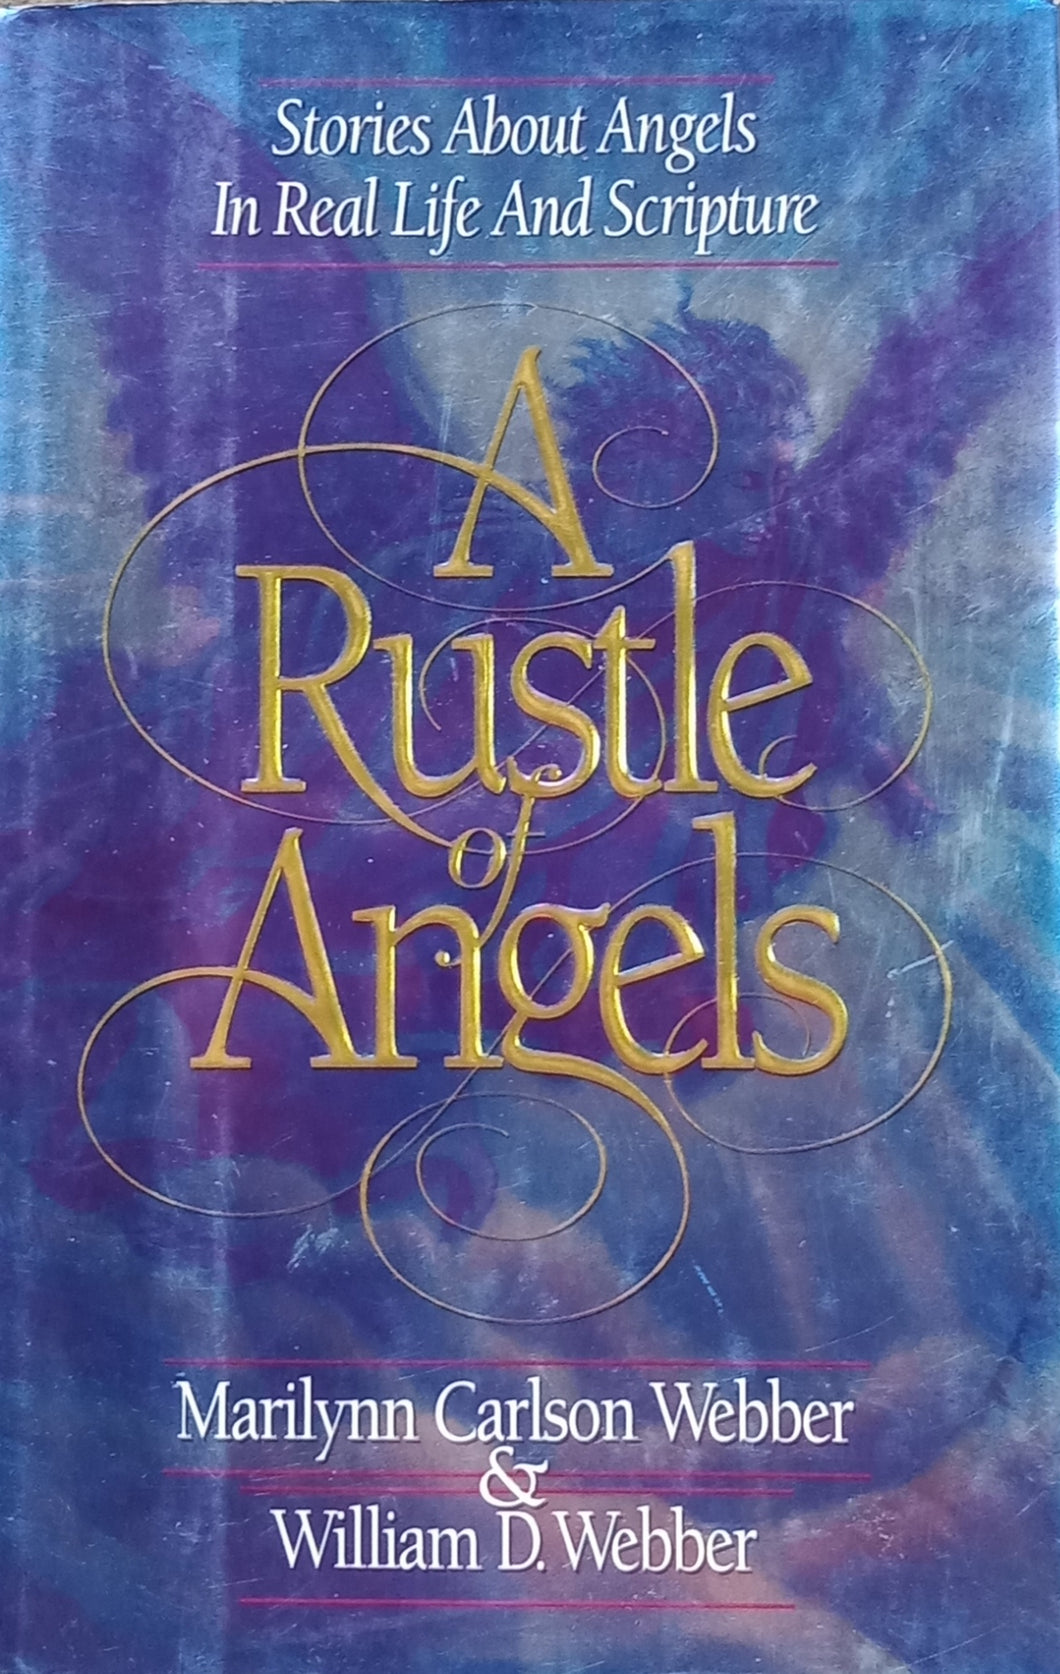 A Rusle of Angels by Marilyn Carlson Webber